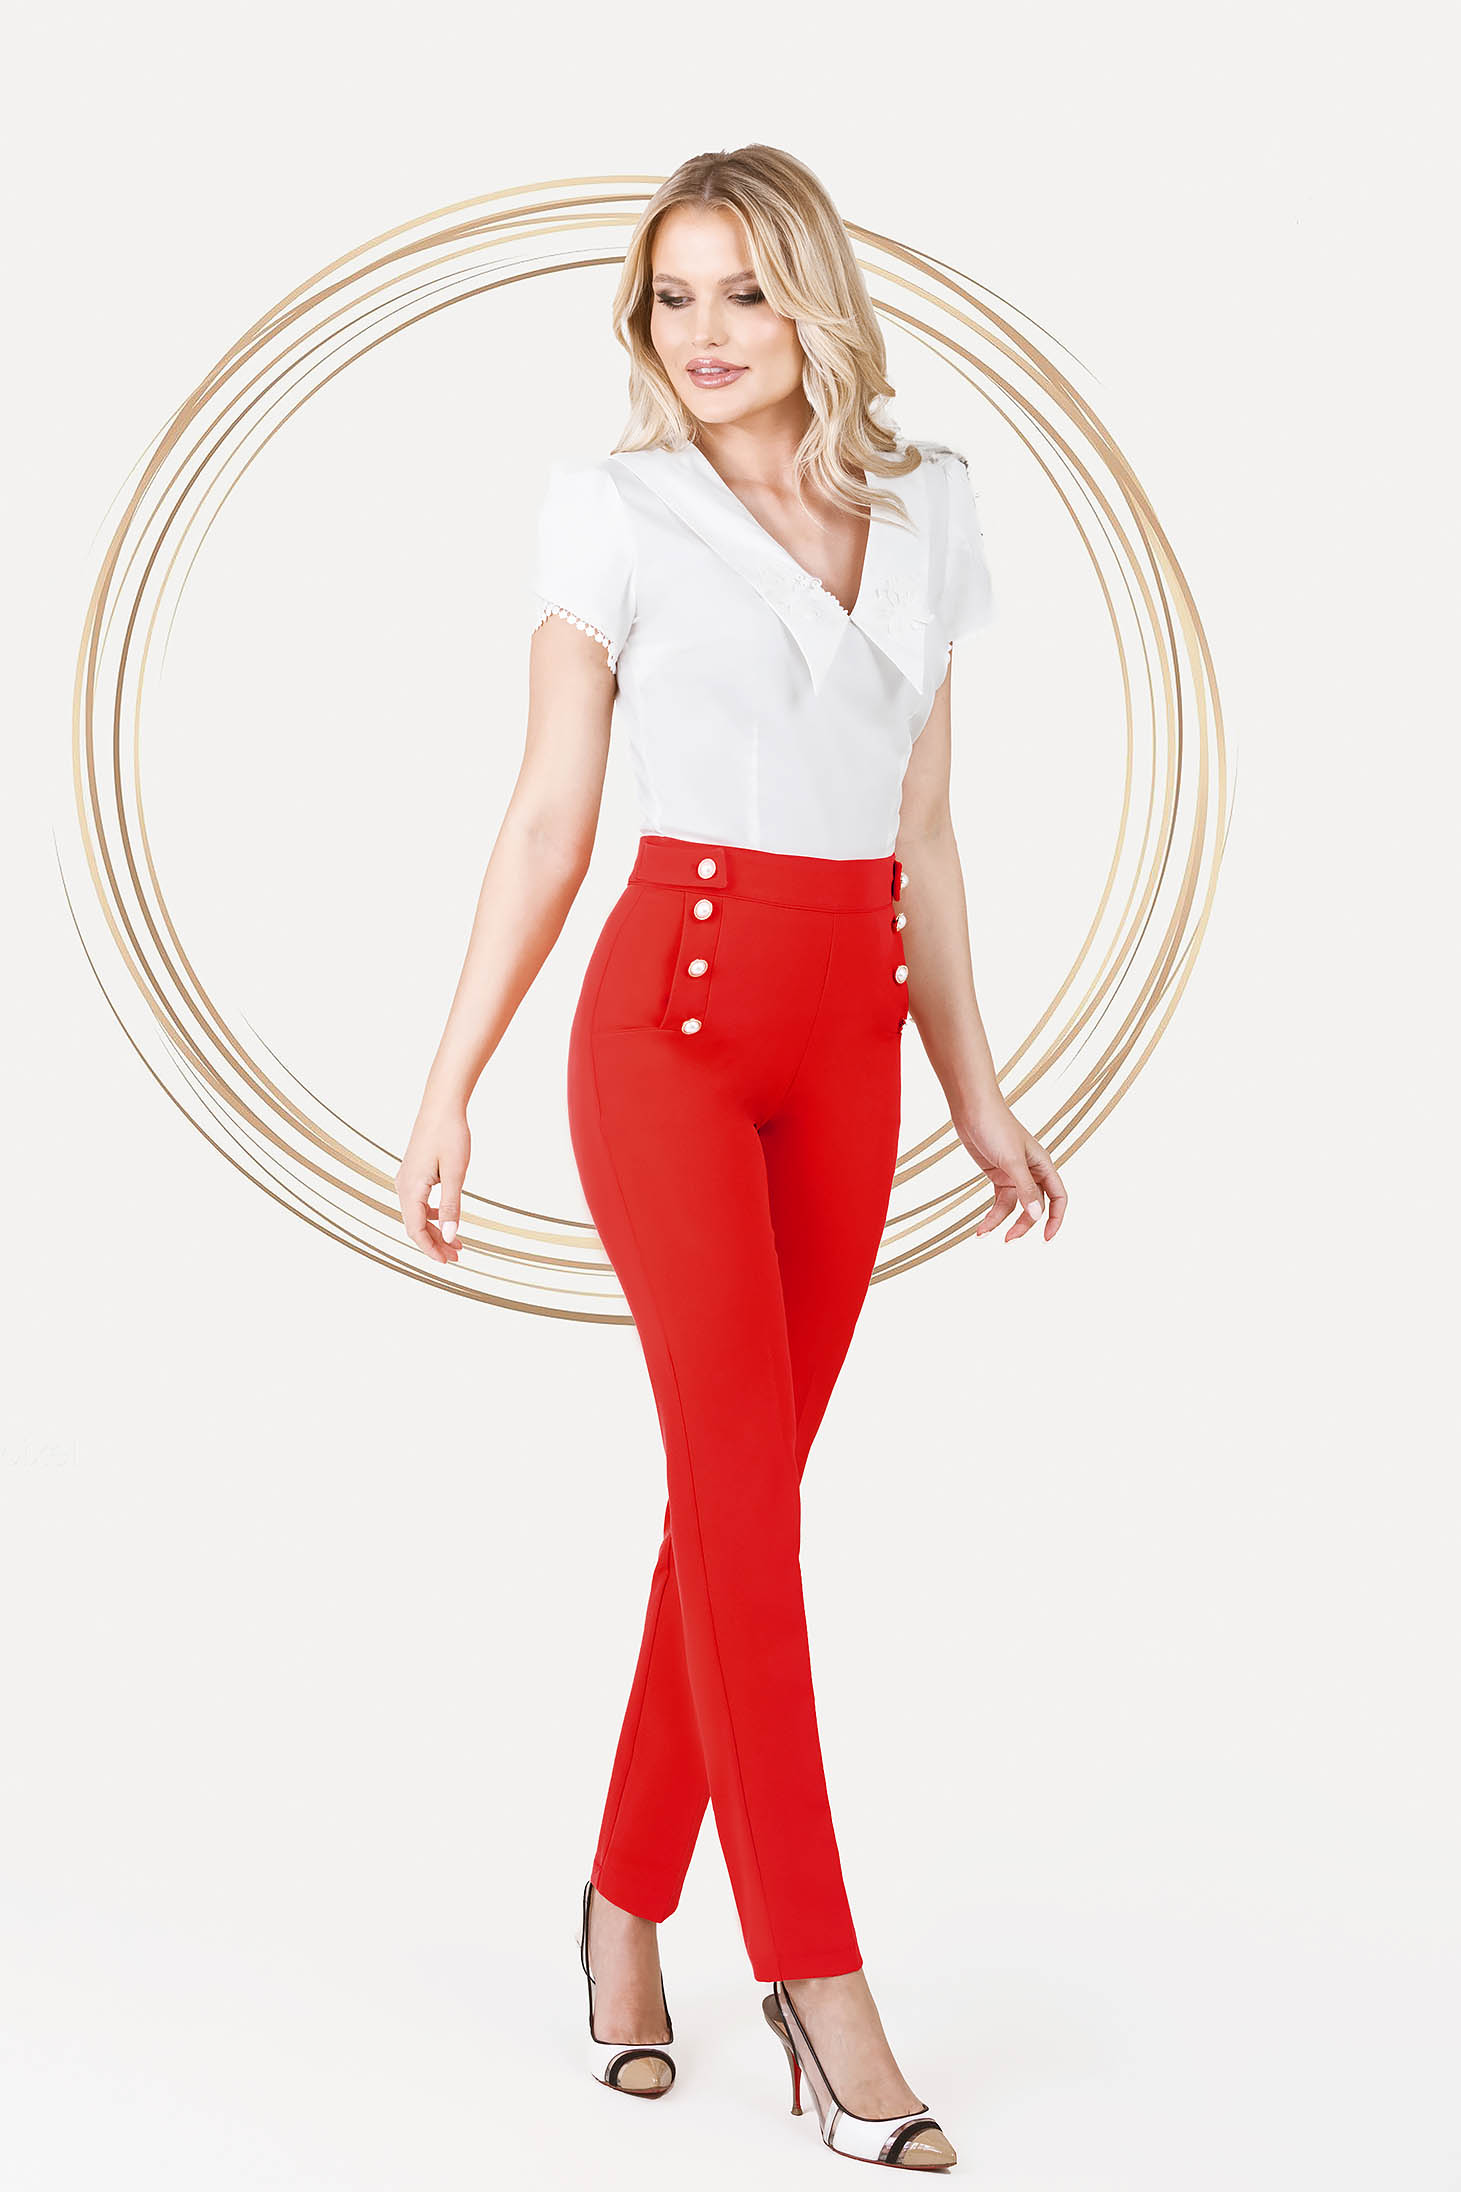 Red trousers office conical medium waist with pockets with pearls